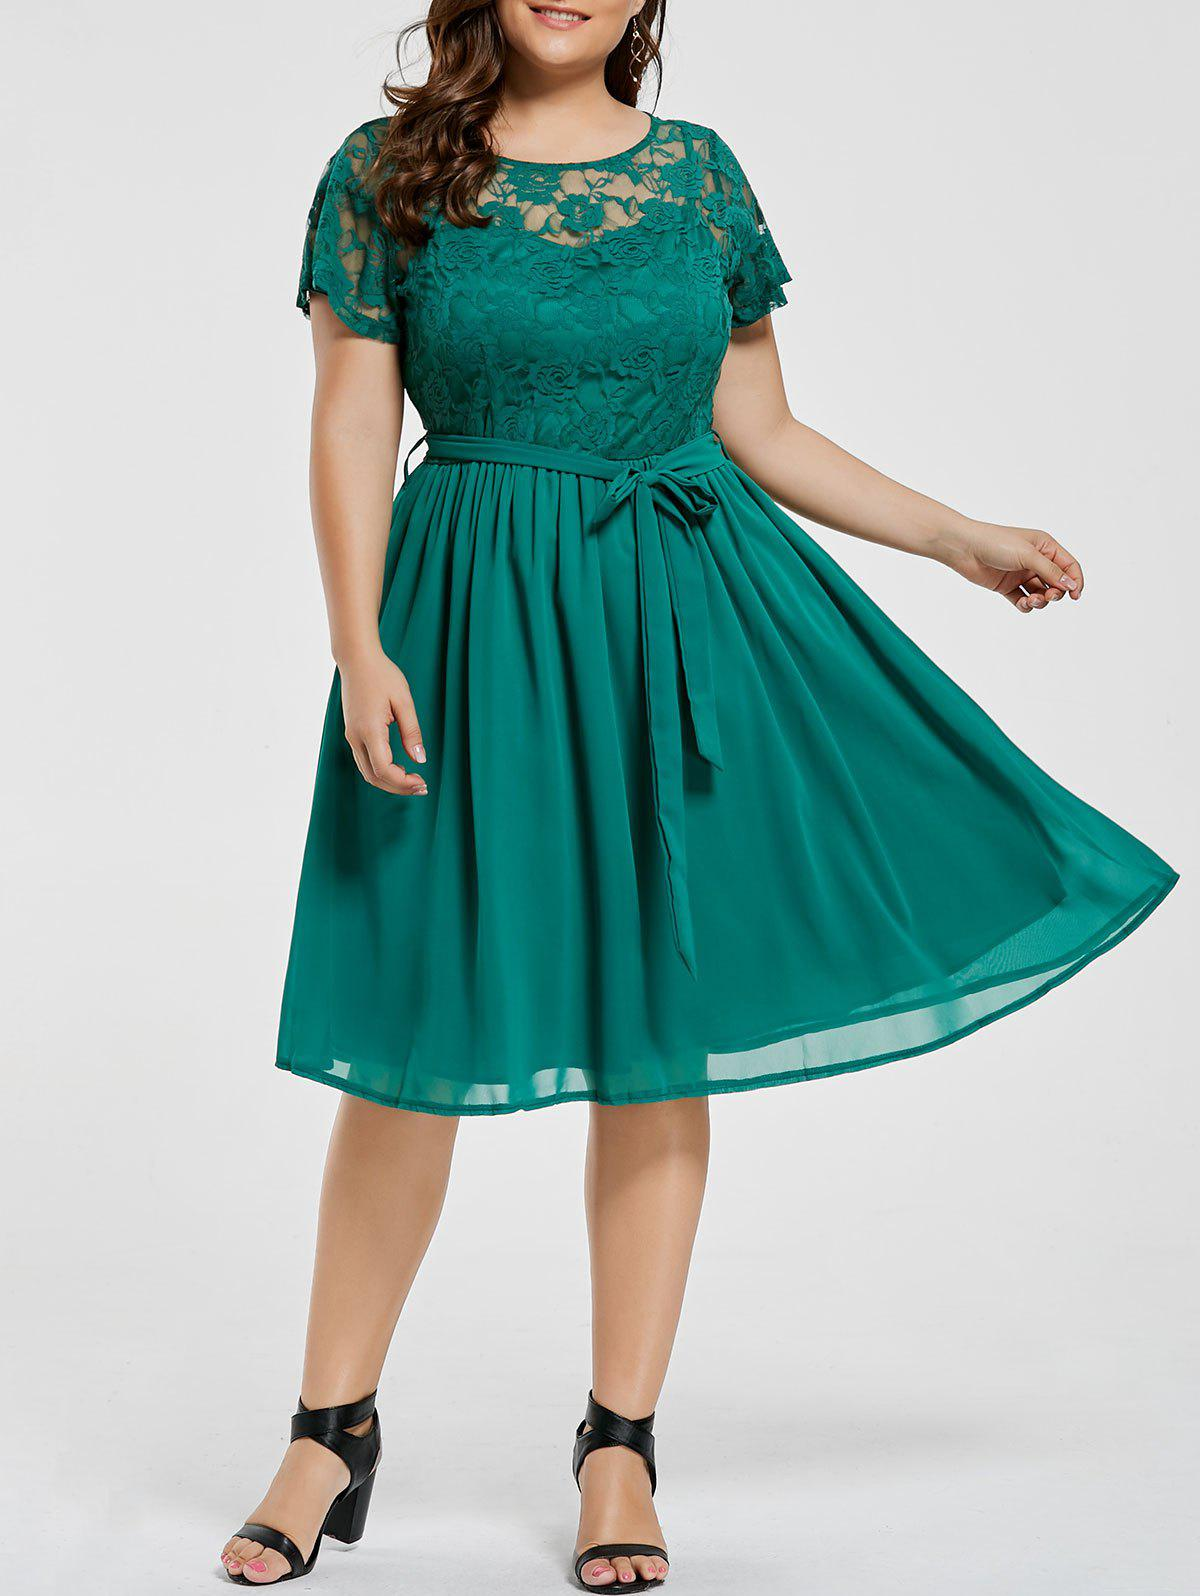 Plus Size Overlay Lace Panel DressWOMEN<br><br>Size: 6XL; Color: GREEN; Style: Casual; Material: Cotton,Polyester; Silhouette: A-Line; Dresses Length: Knee-Length; Neckline: Round Collar; Sleeve Length: Short Sleeves; Embellishment: Lace; Pattern Type: Solid; With Belt: No; Season: Fall,Summer; Weight: 0.3500kg; Package Contents: 1 x Dress;